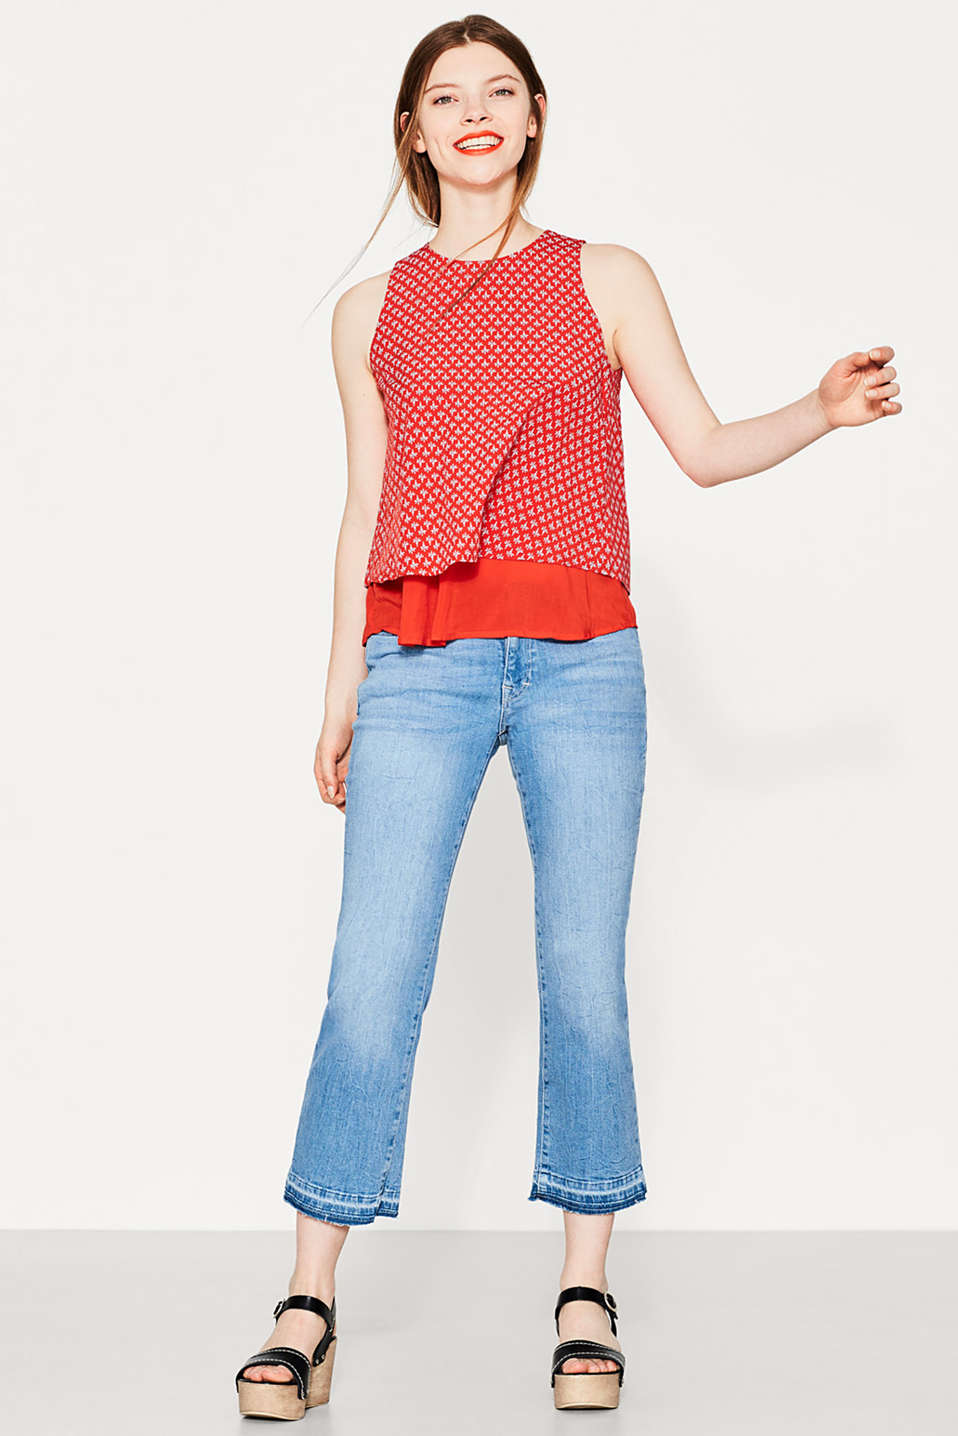 edc - Delicate blouse top in a layered look